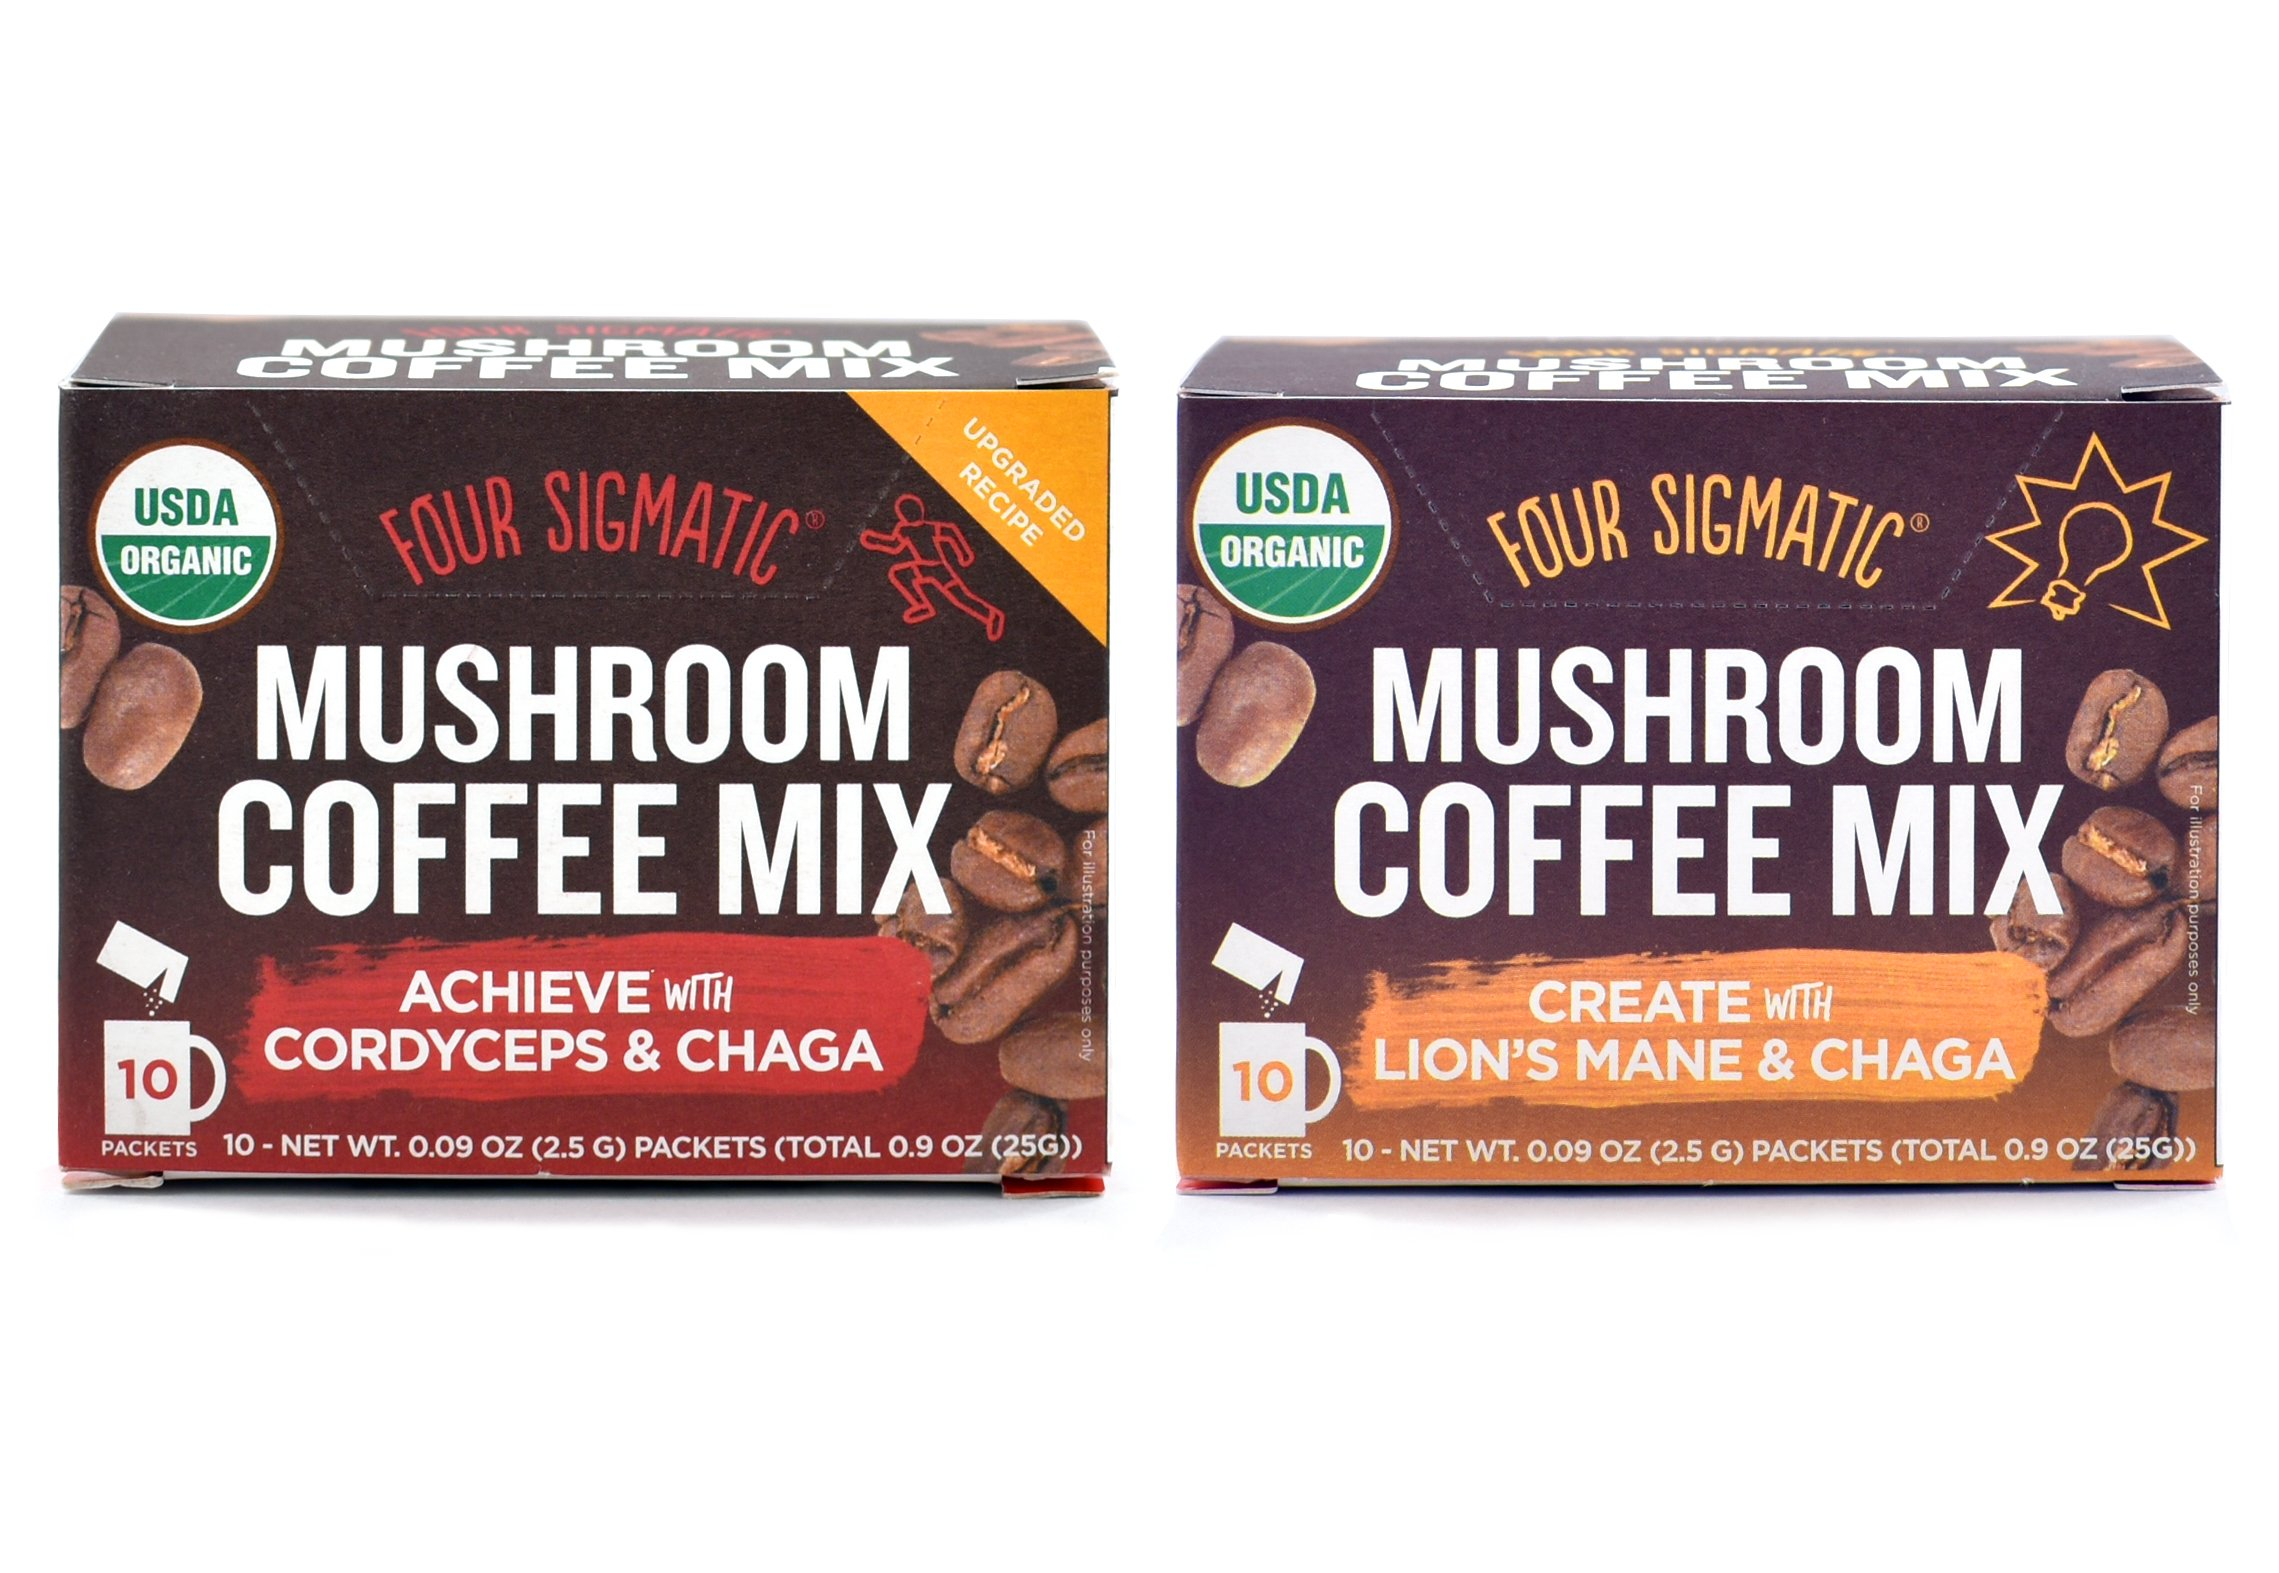 Four Sigmatic Mushroom Coffee Mix Pack of 2 - Lion's Mane and Chaga & Cordyceps and Chaga by Four Sigmatic (Image #1)